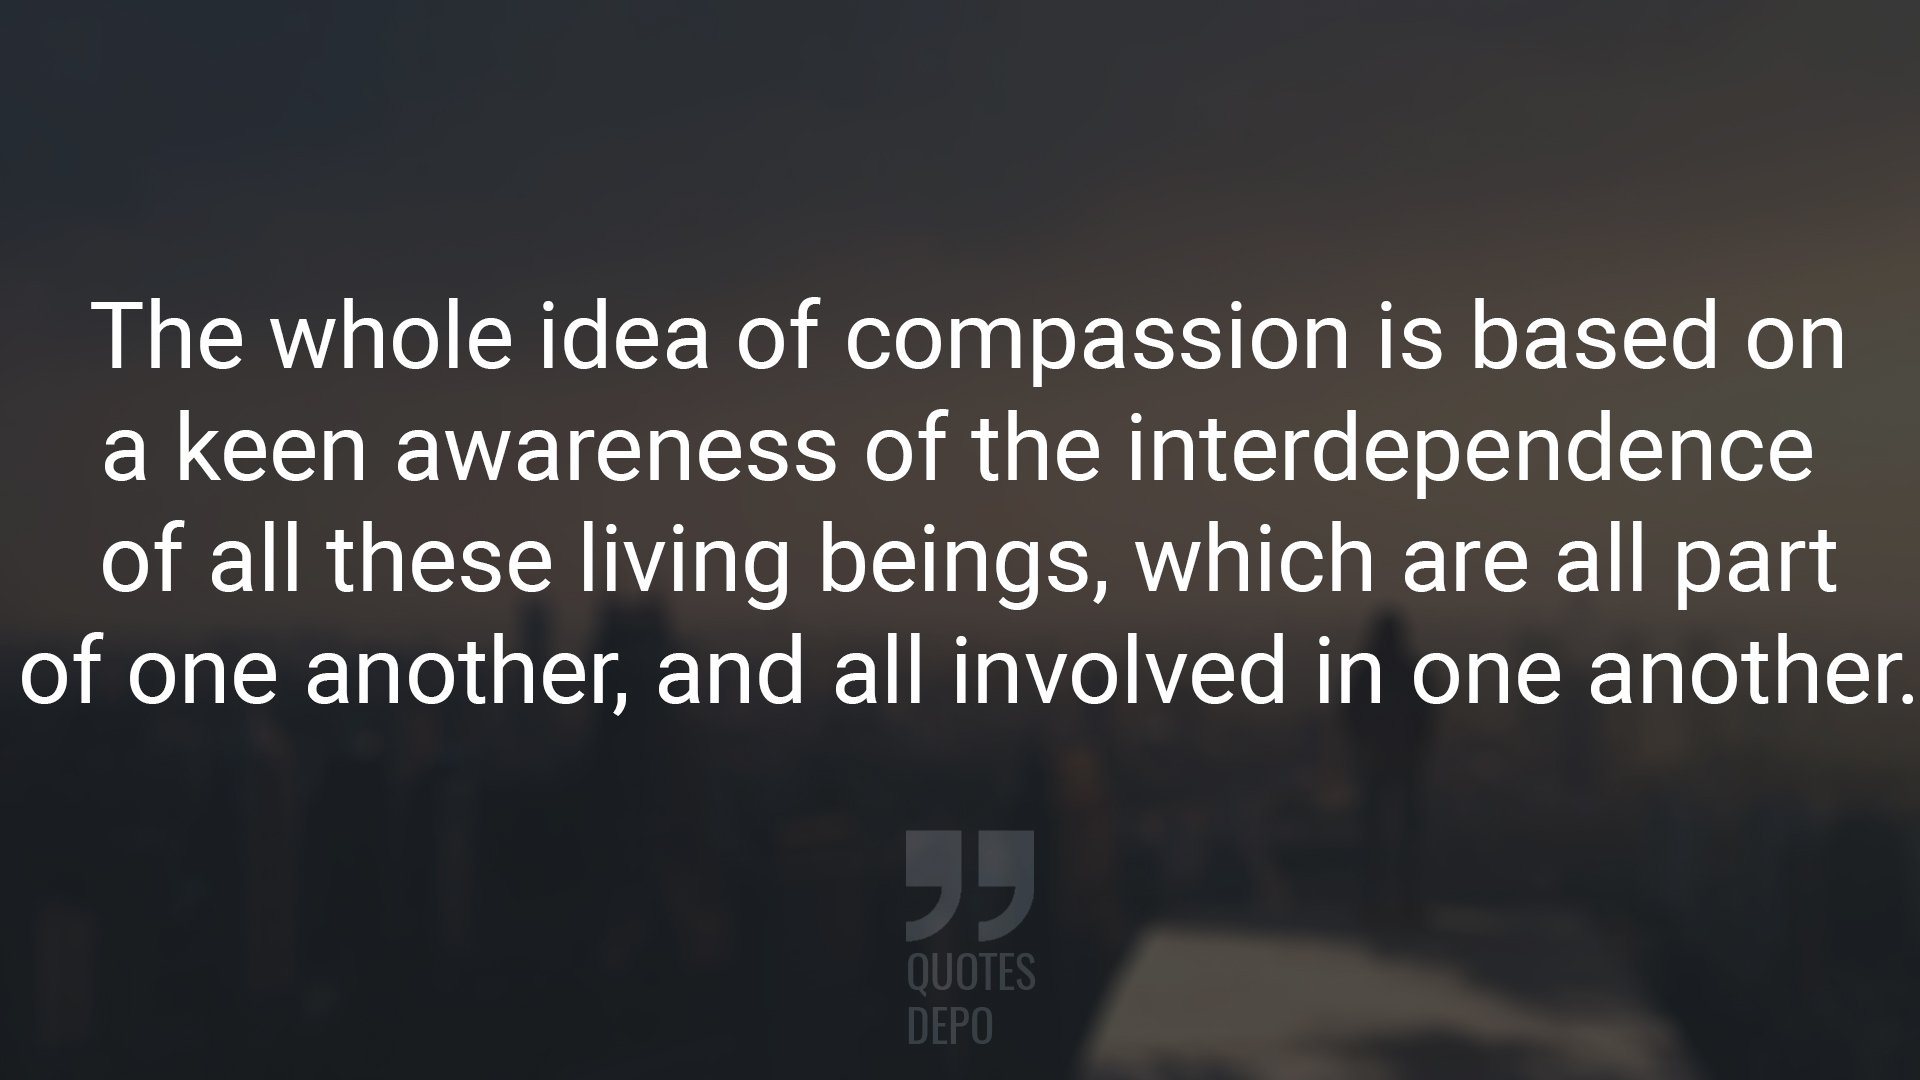 The Whole Idea of Compassion